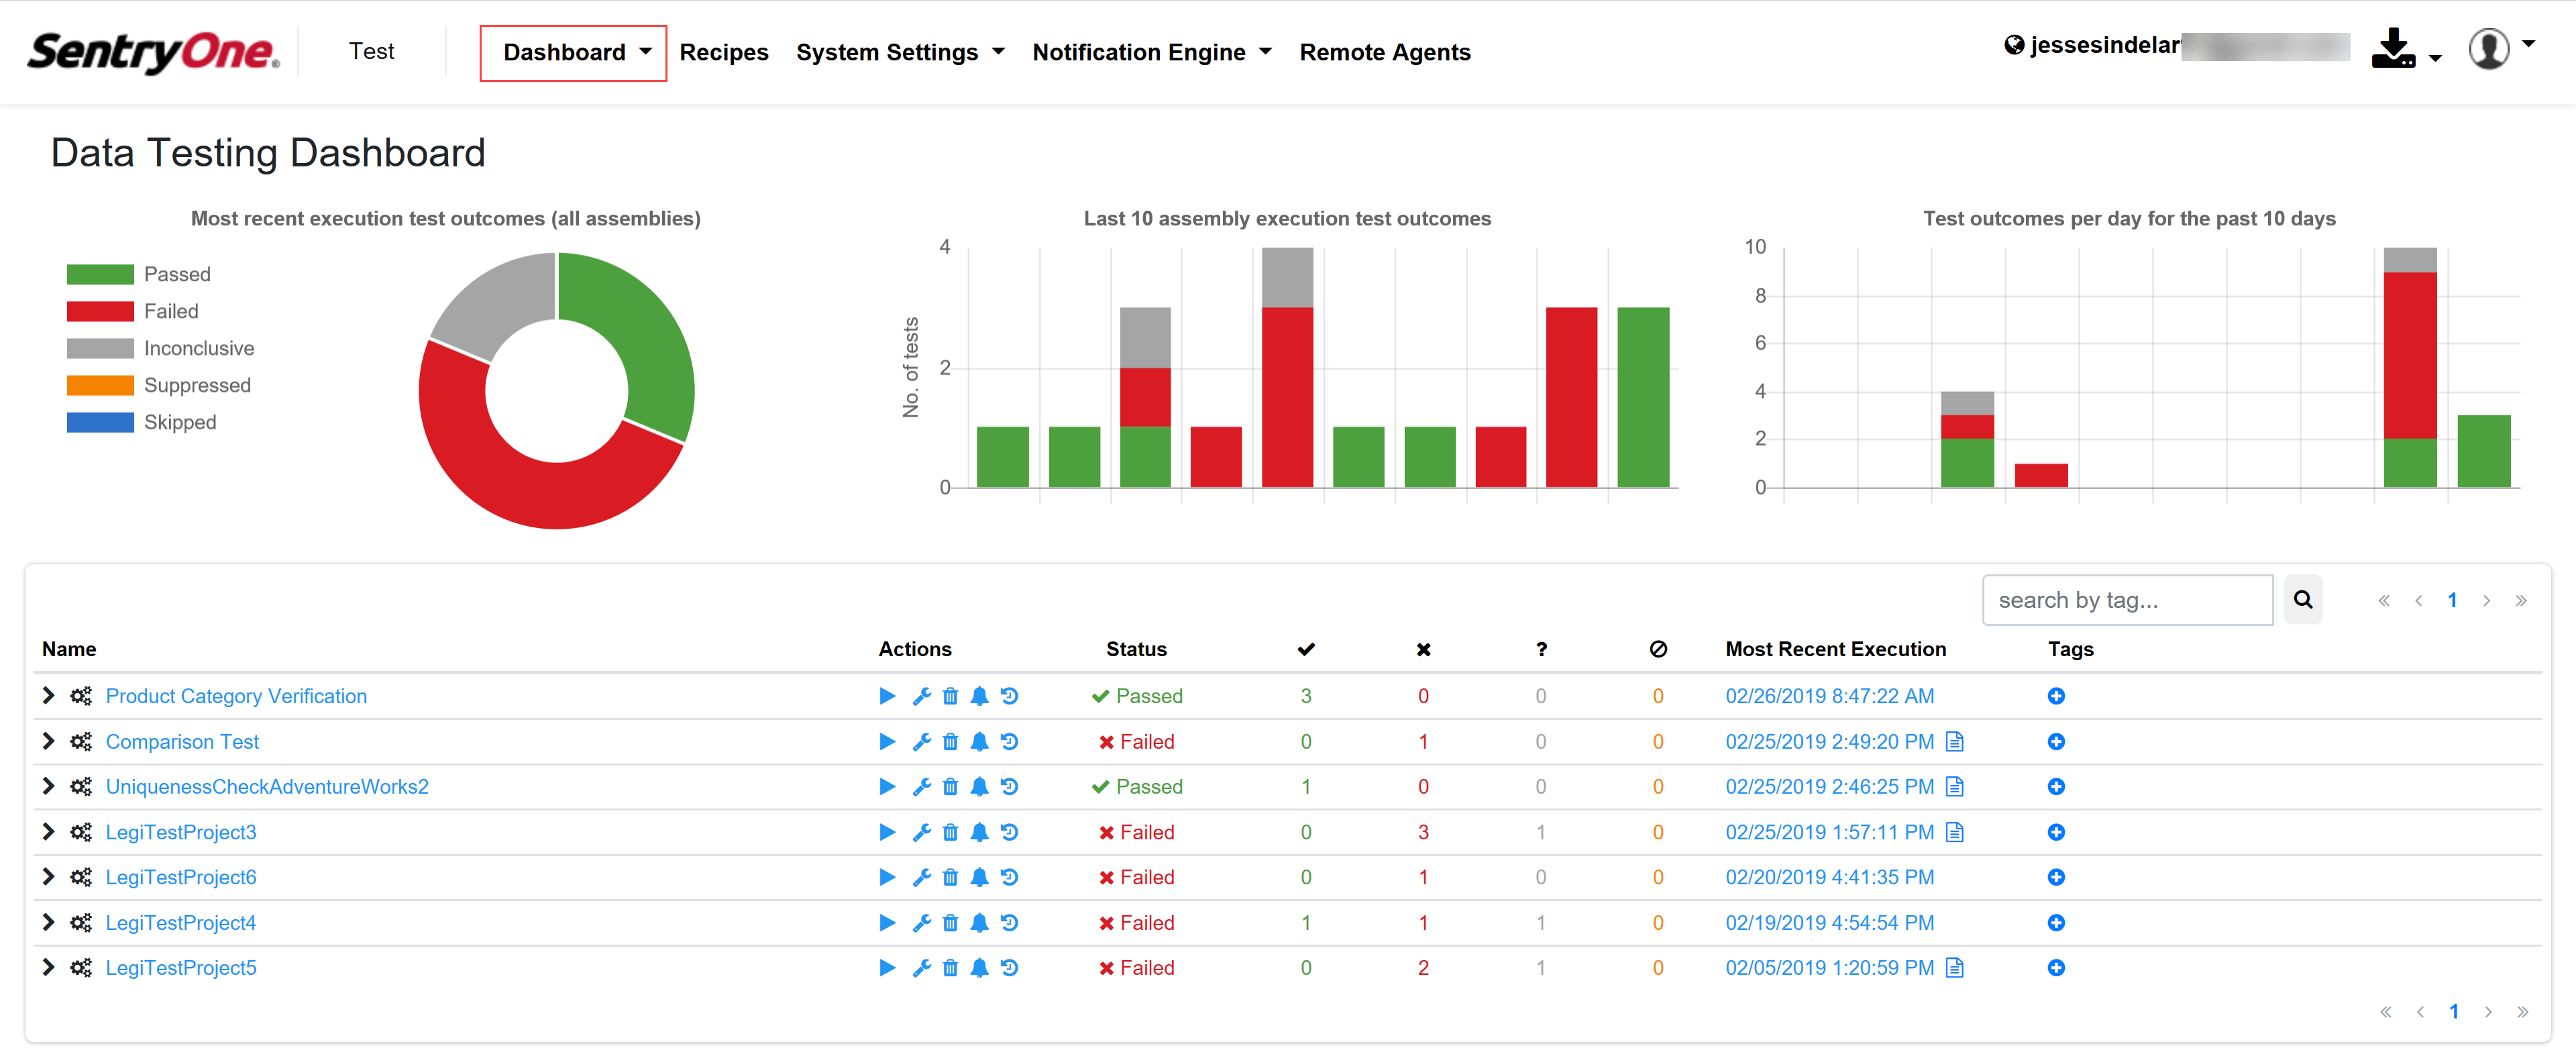 SentryOne Test Data Testing Dashboard Summary